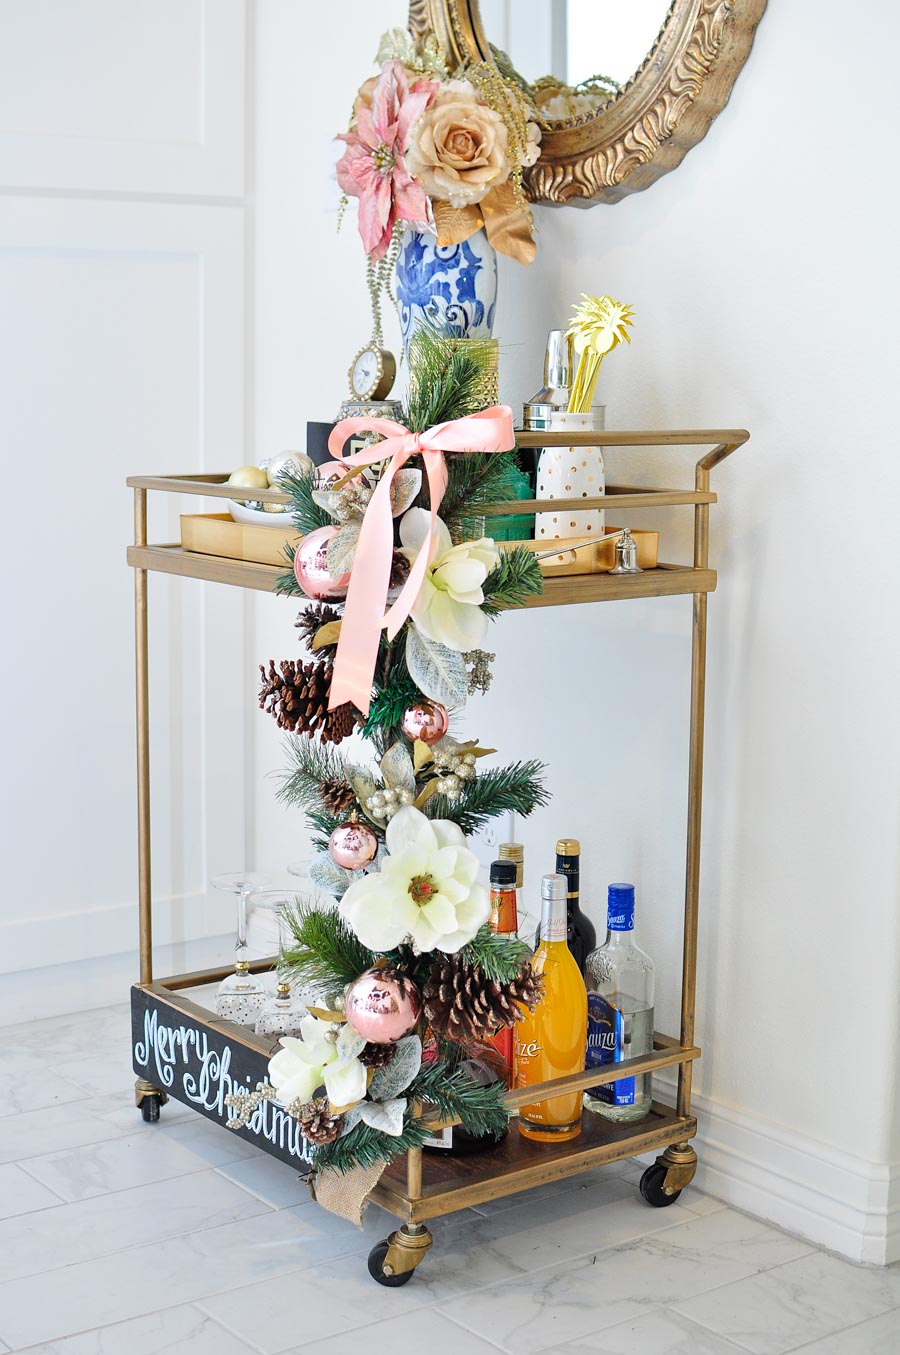 Decorate your bar cart like a pro for the holidays with these simple tips and ideas. Love the blush pink and gold chinioiserie vibe!